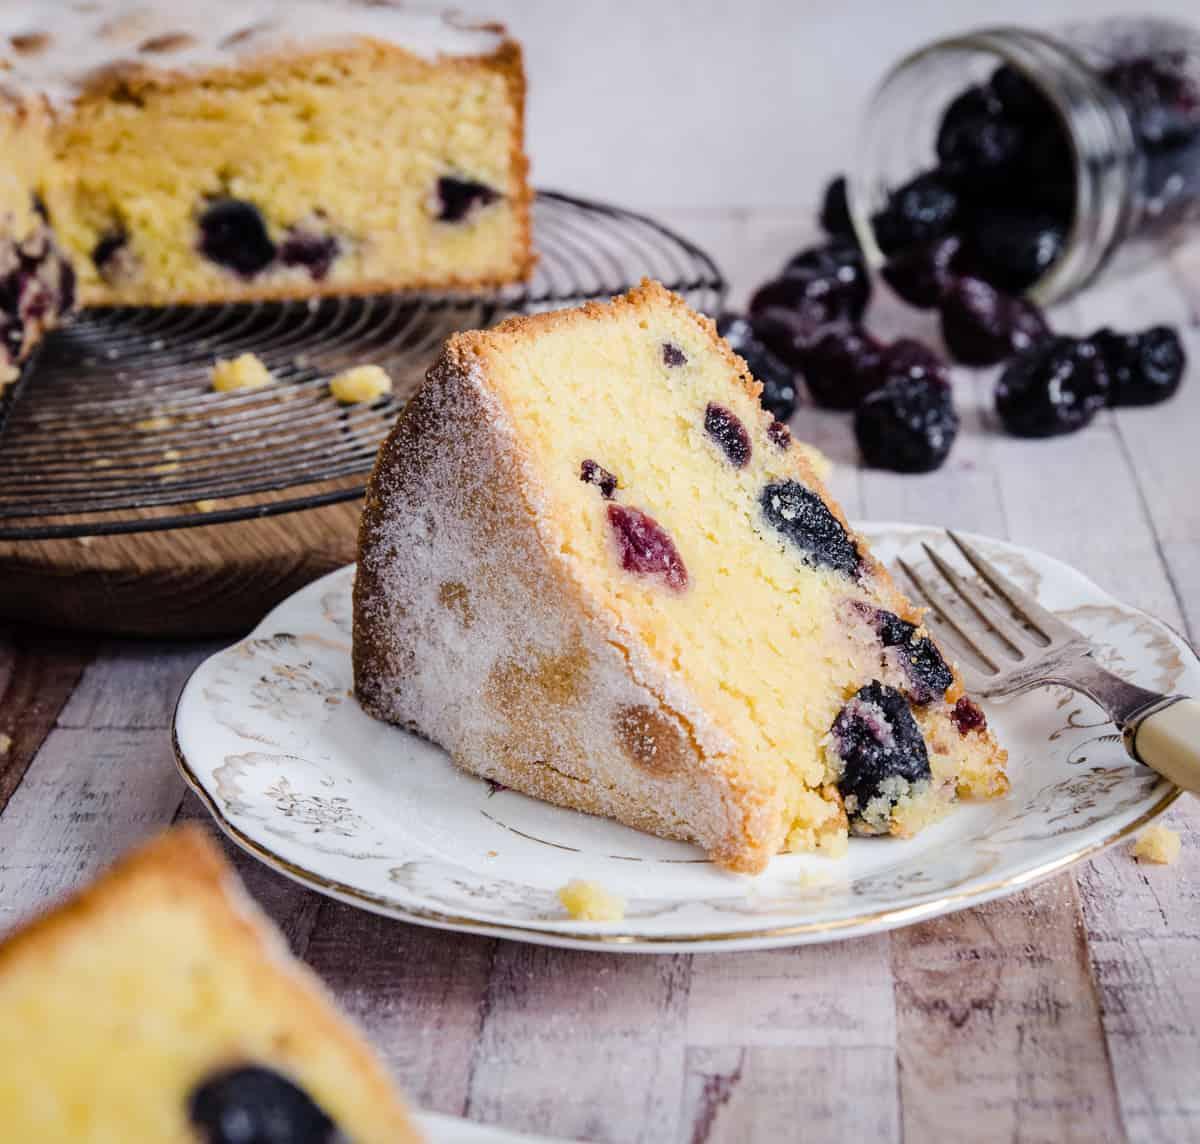 slice of cherry cake on a plate